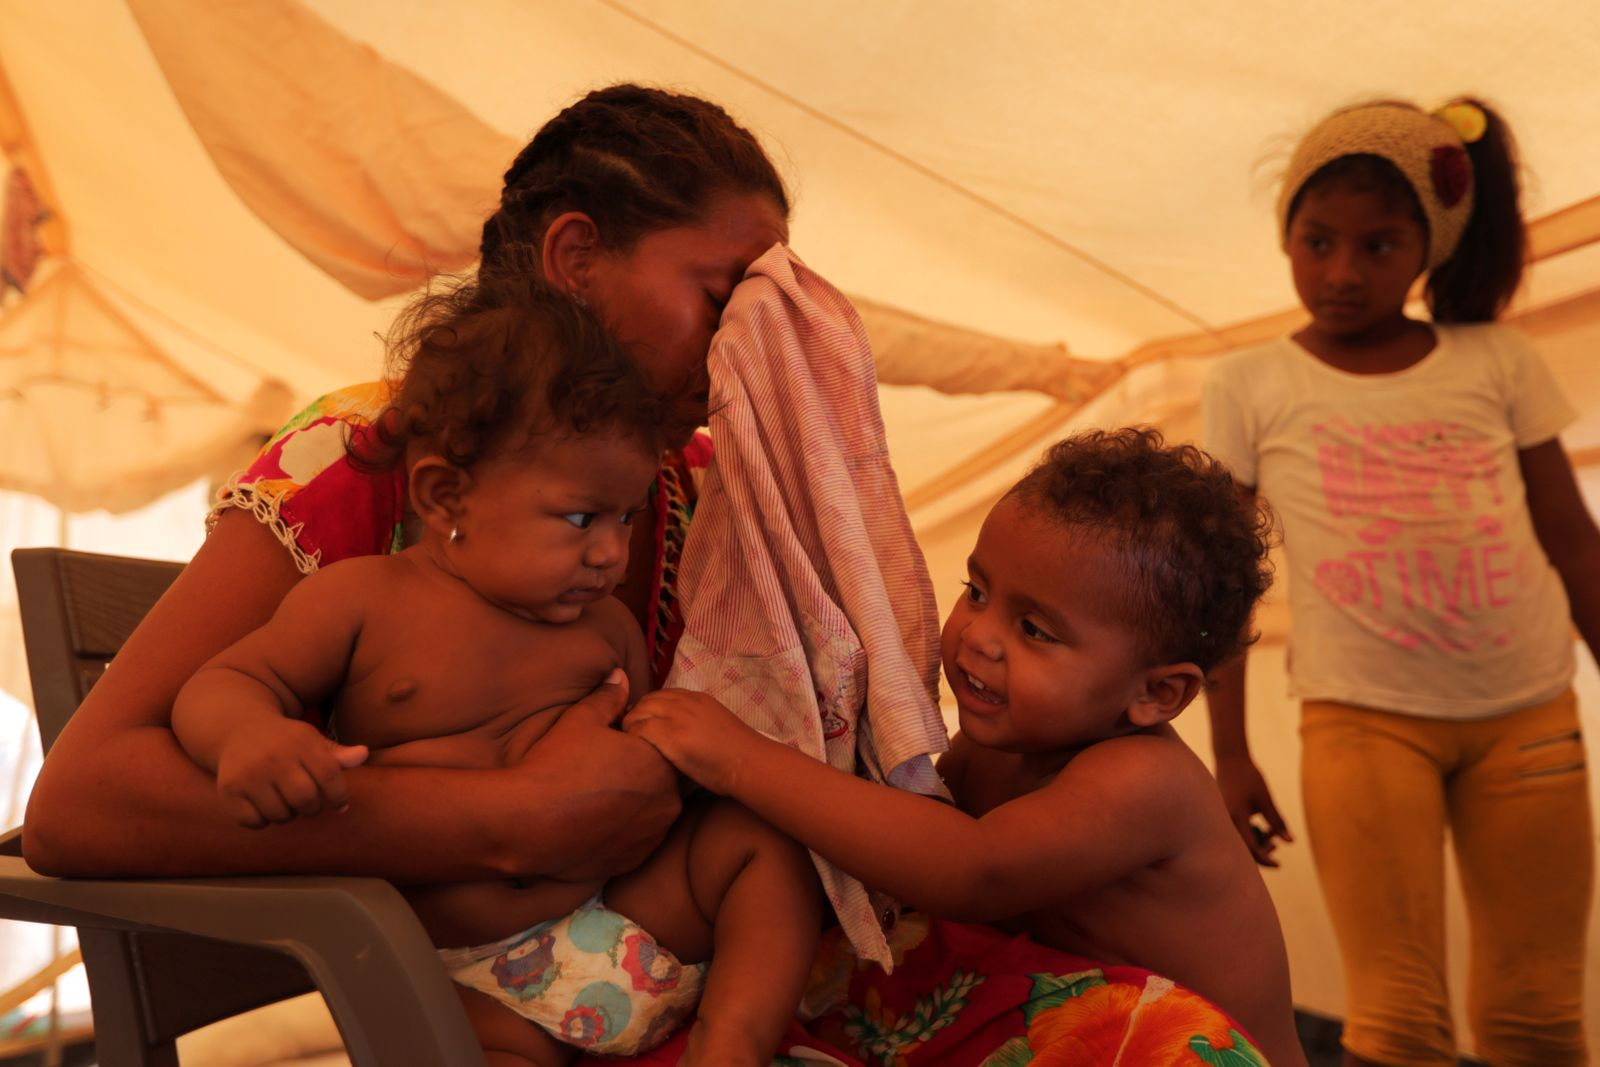 A Venezuelan migrant mother cries while carrying her baby, inside a tent in a camp run by the UN refugee agency UNHCR in Maicao